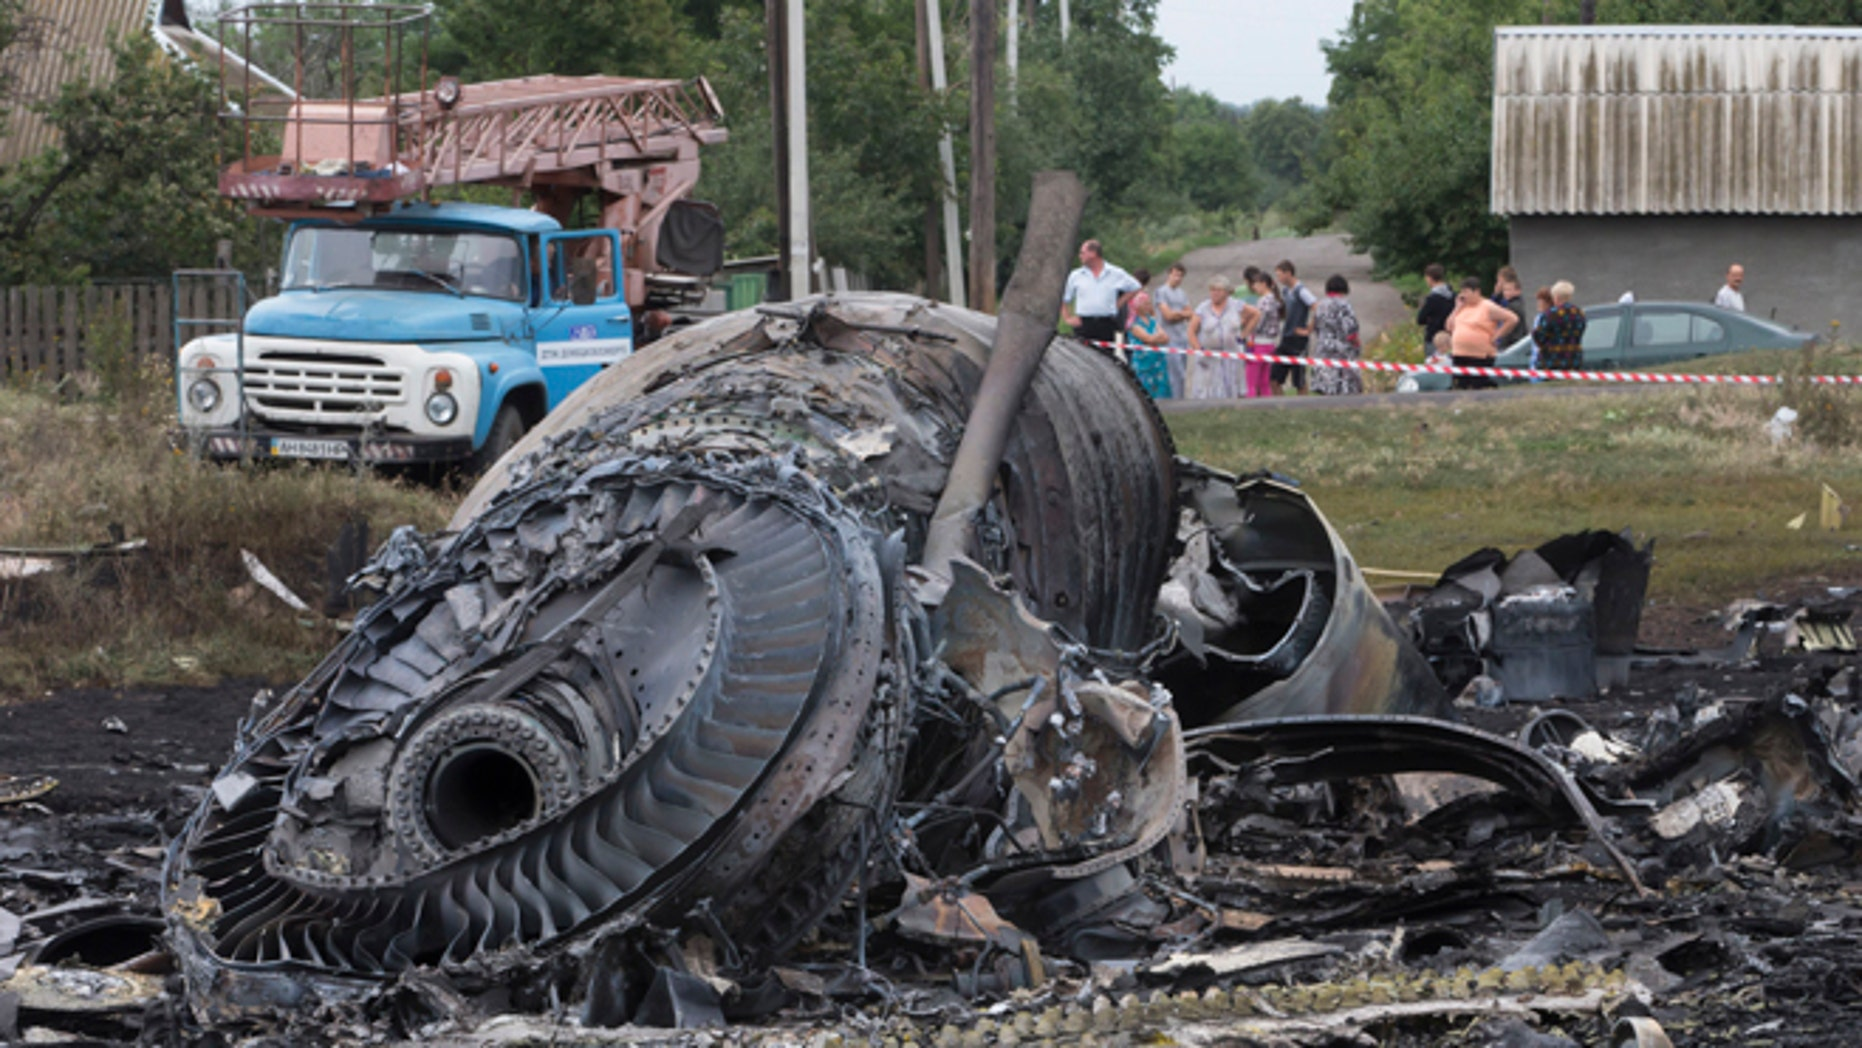 Local citizens, background, look at the site of a crashed Malaysia Airlines passenger plane near the village of Rozsypne, Ukraine, eastern Ukraine Friday, July 18, 2014. Rescue workers, policemen and even off-duty coal miners were combing a sprawling area in eastern Ukraine near the Russian border where the Malaysian plane ended up in burning pieces Thursday, killing all 298 aboard. (AP Photo/Dmitry Lovetsky)